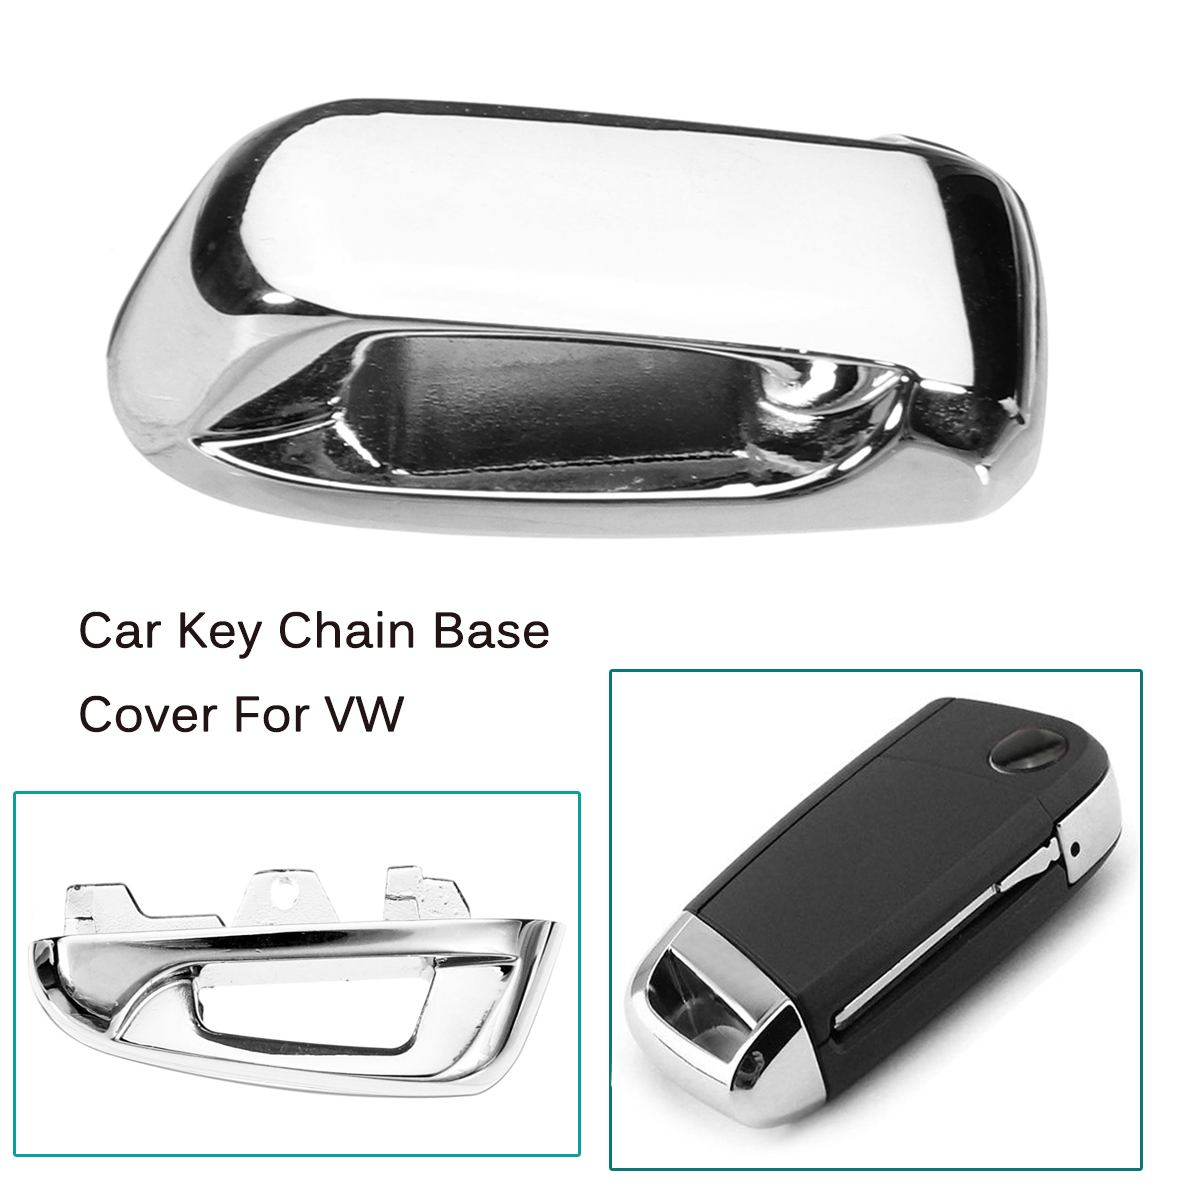 Remote Key Chain Hole Metal Cover Keyless Top Head Key Base for Volkswagen <font><b>VW</b></font> <font><b>Golf</b></font> <font><b>7</b></font> MK7 <font><b>GTI</b></font> Touran 2016 Octavia A7 2015 2016 image